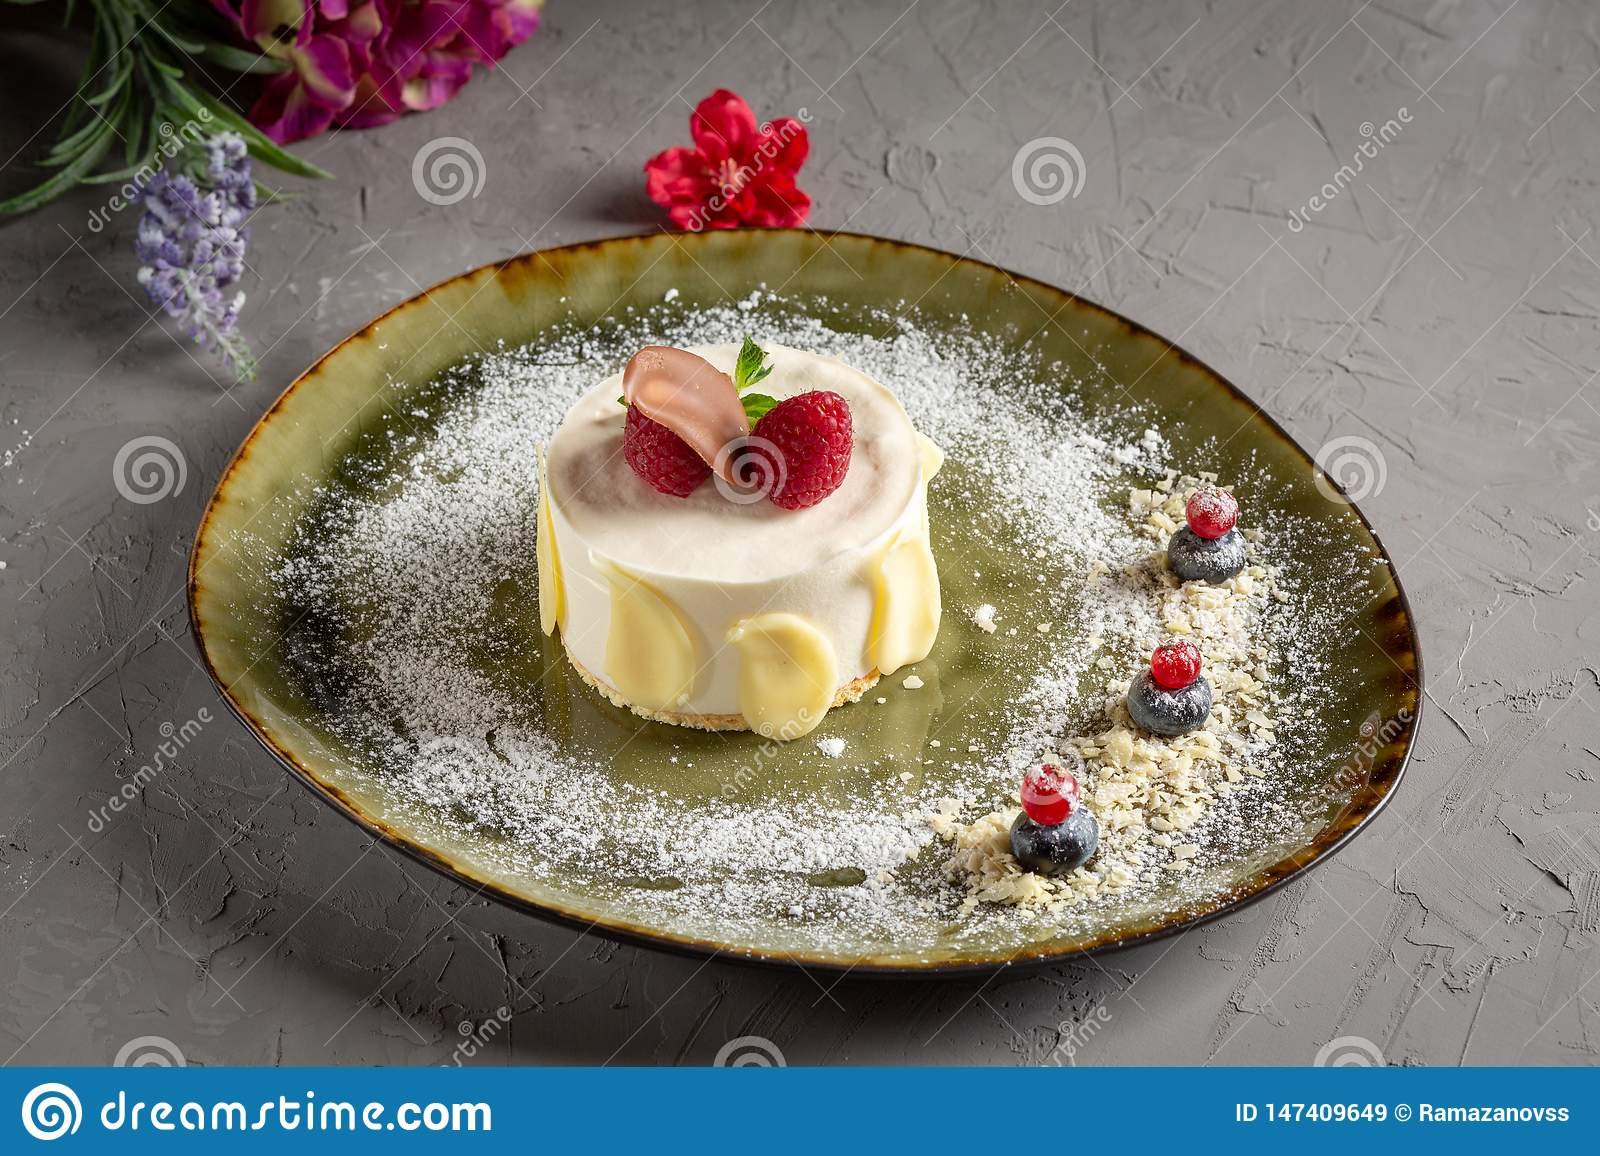 Milk dessert with fruit and chocolate on a gray background